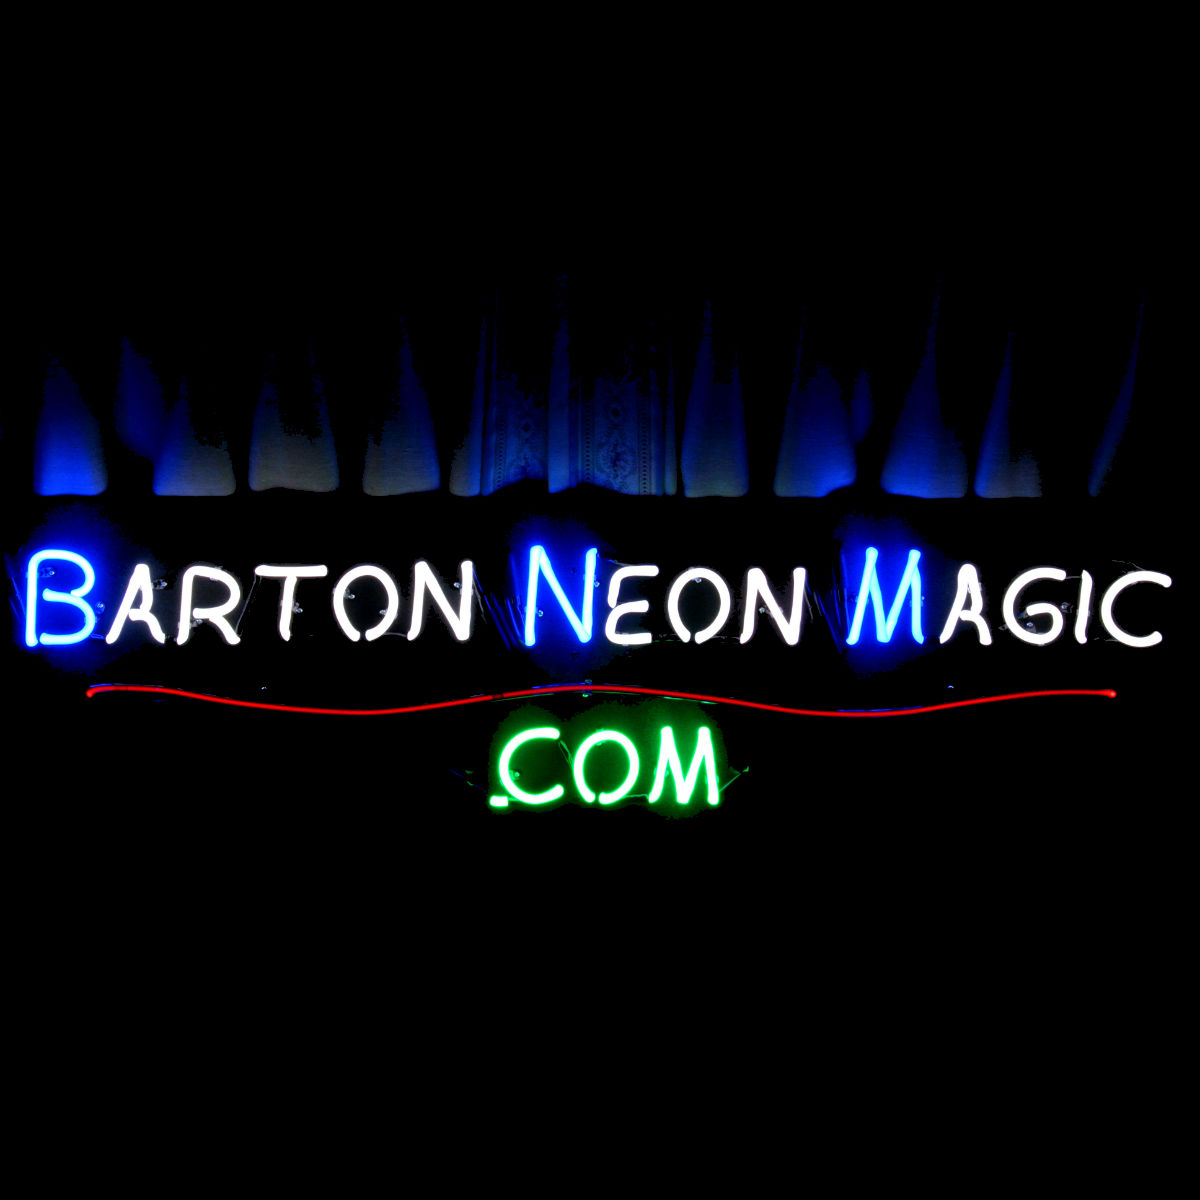 Quality Custom Automotive Neon Signs by John Barton - former Studebaker Packard New Car Dealer - BartonNeonMagic.com